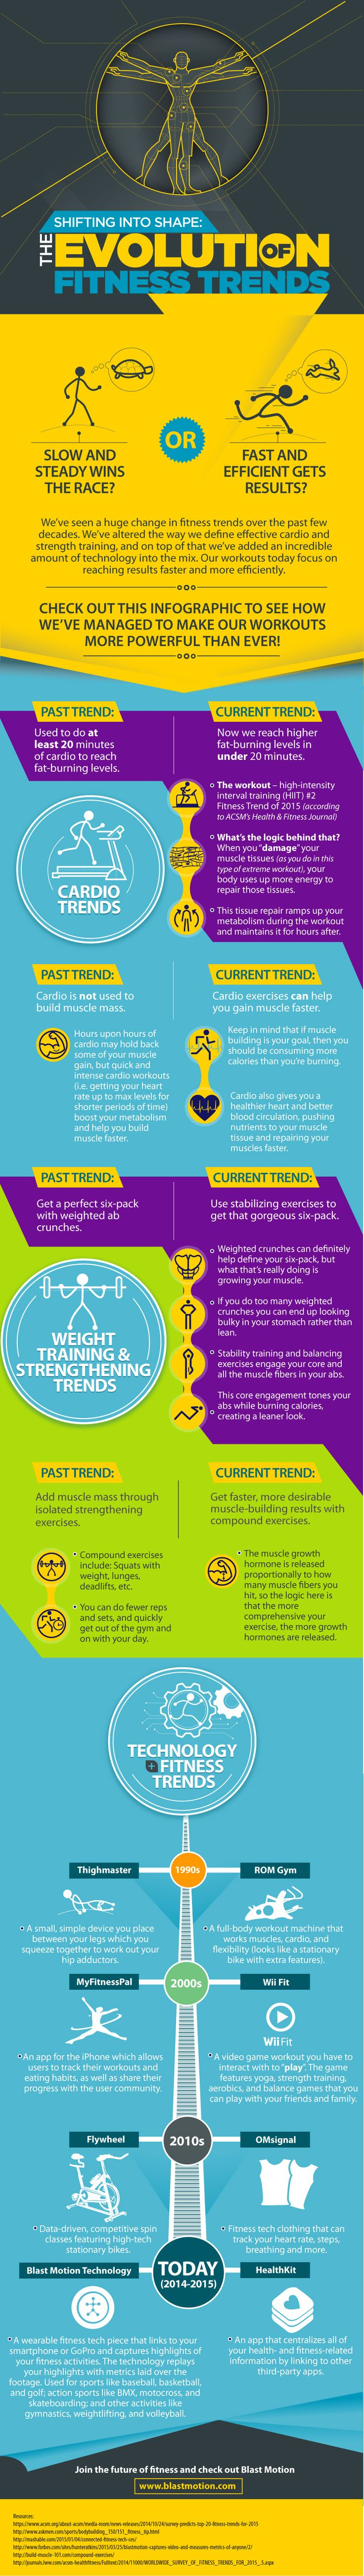 Shifting into Shape: The Evolution of #Fitness Trends - Do you fancy an infographic? There are a lot of them online, but if you want your own please visit http://www.linfografico.com/prezzi/ Online girano molte infografiche, se ne vuoi realizzare una tutta tua visita http://www.linfografico.com/prezzi/